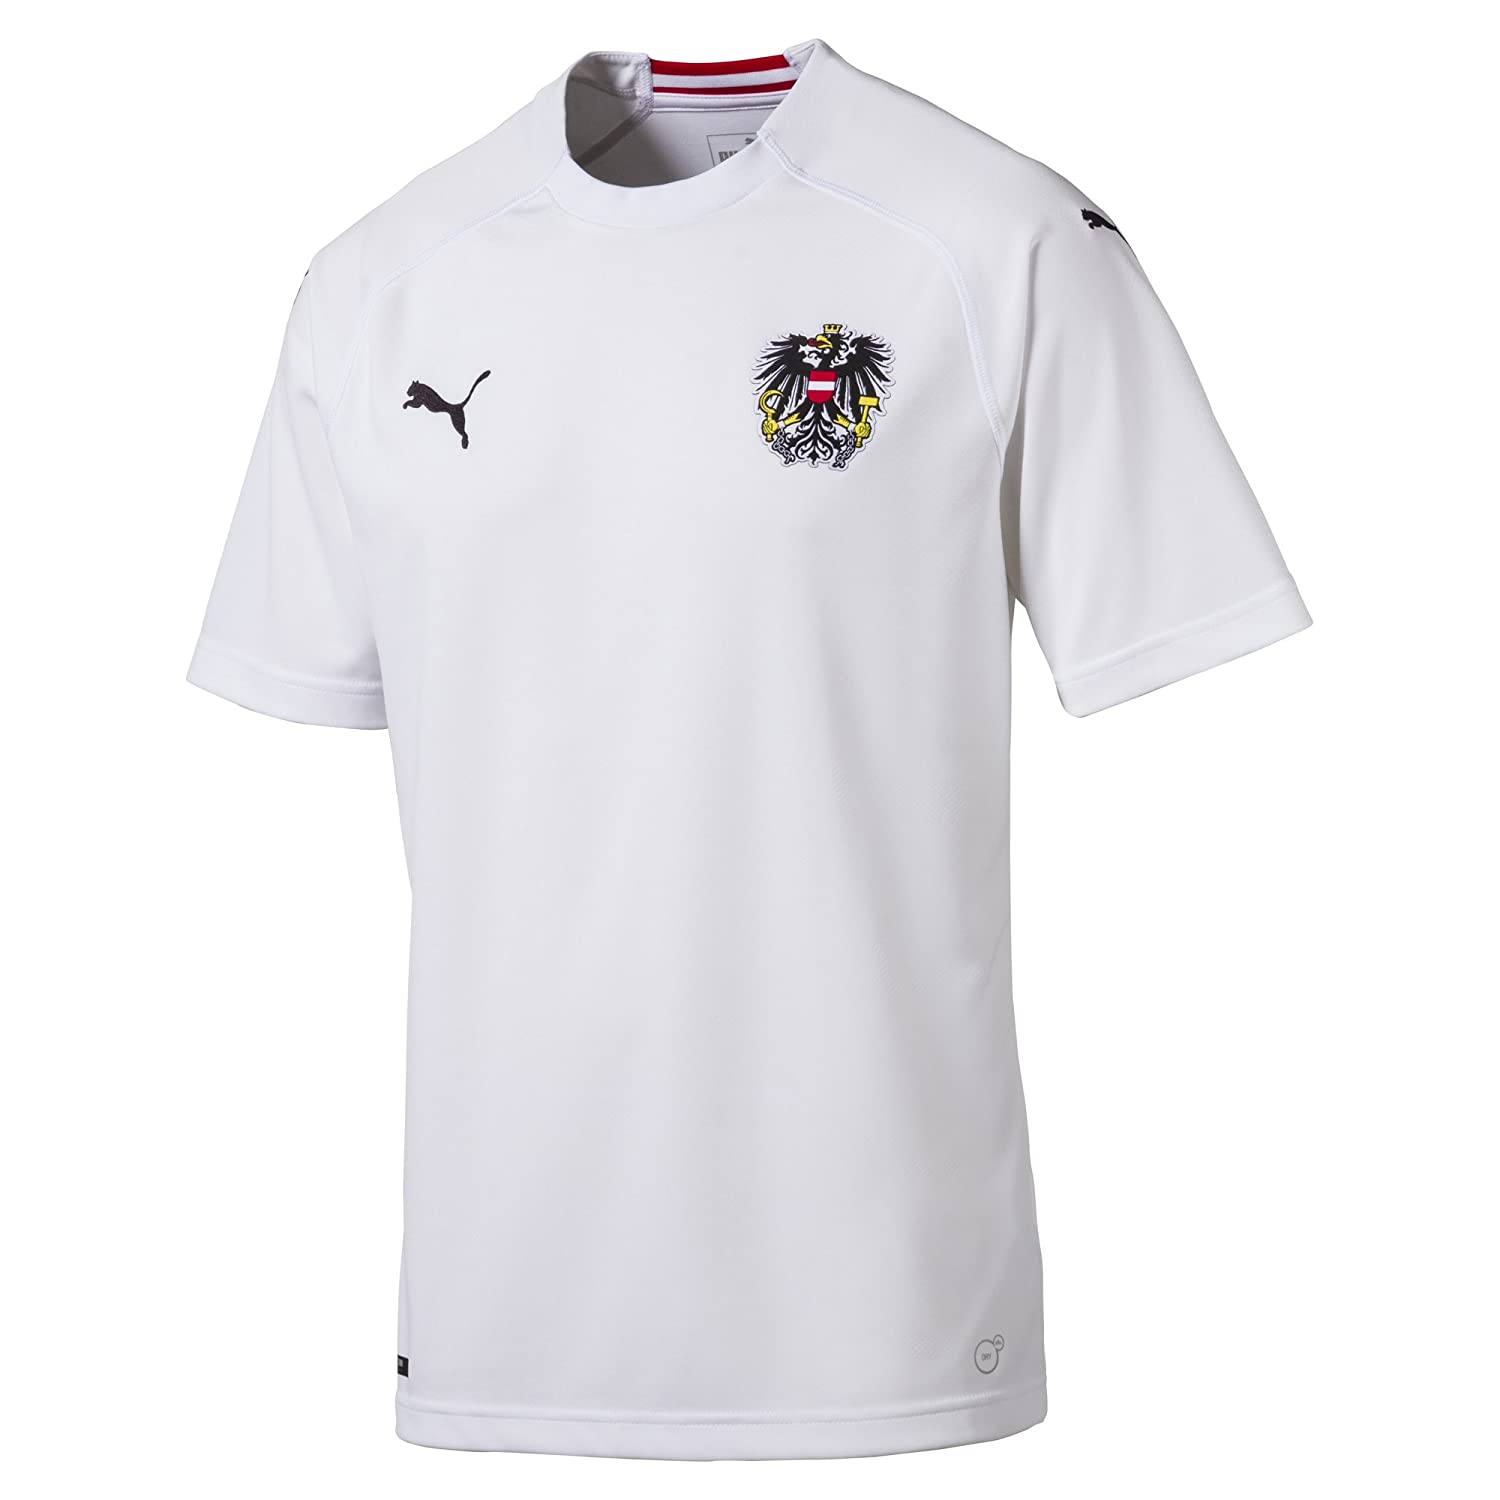 newest dd618 f7612 Amazon.com : PUMA 2018-2019 Austria Away Football Shirt ...